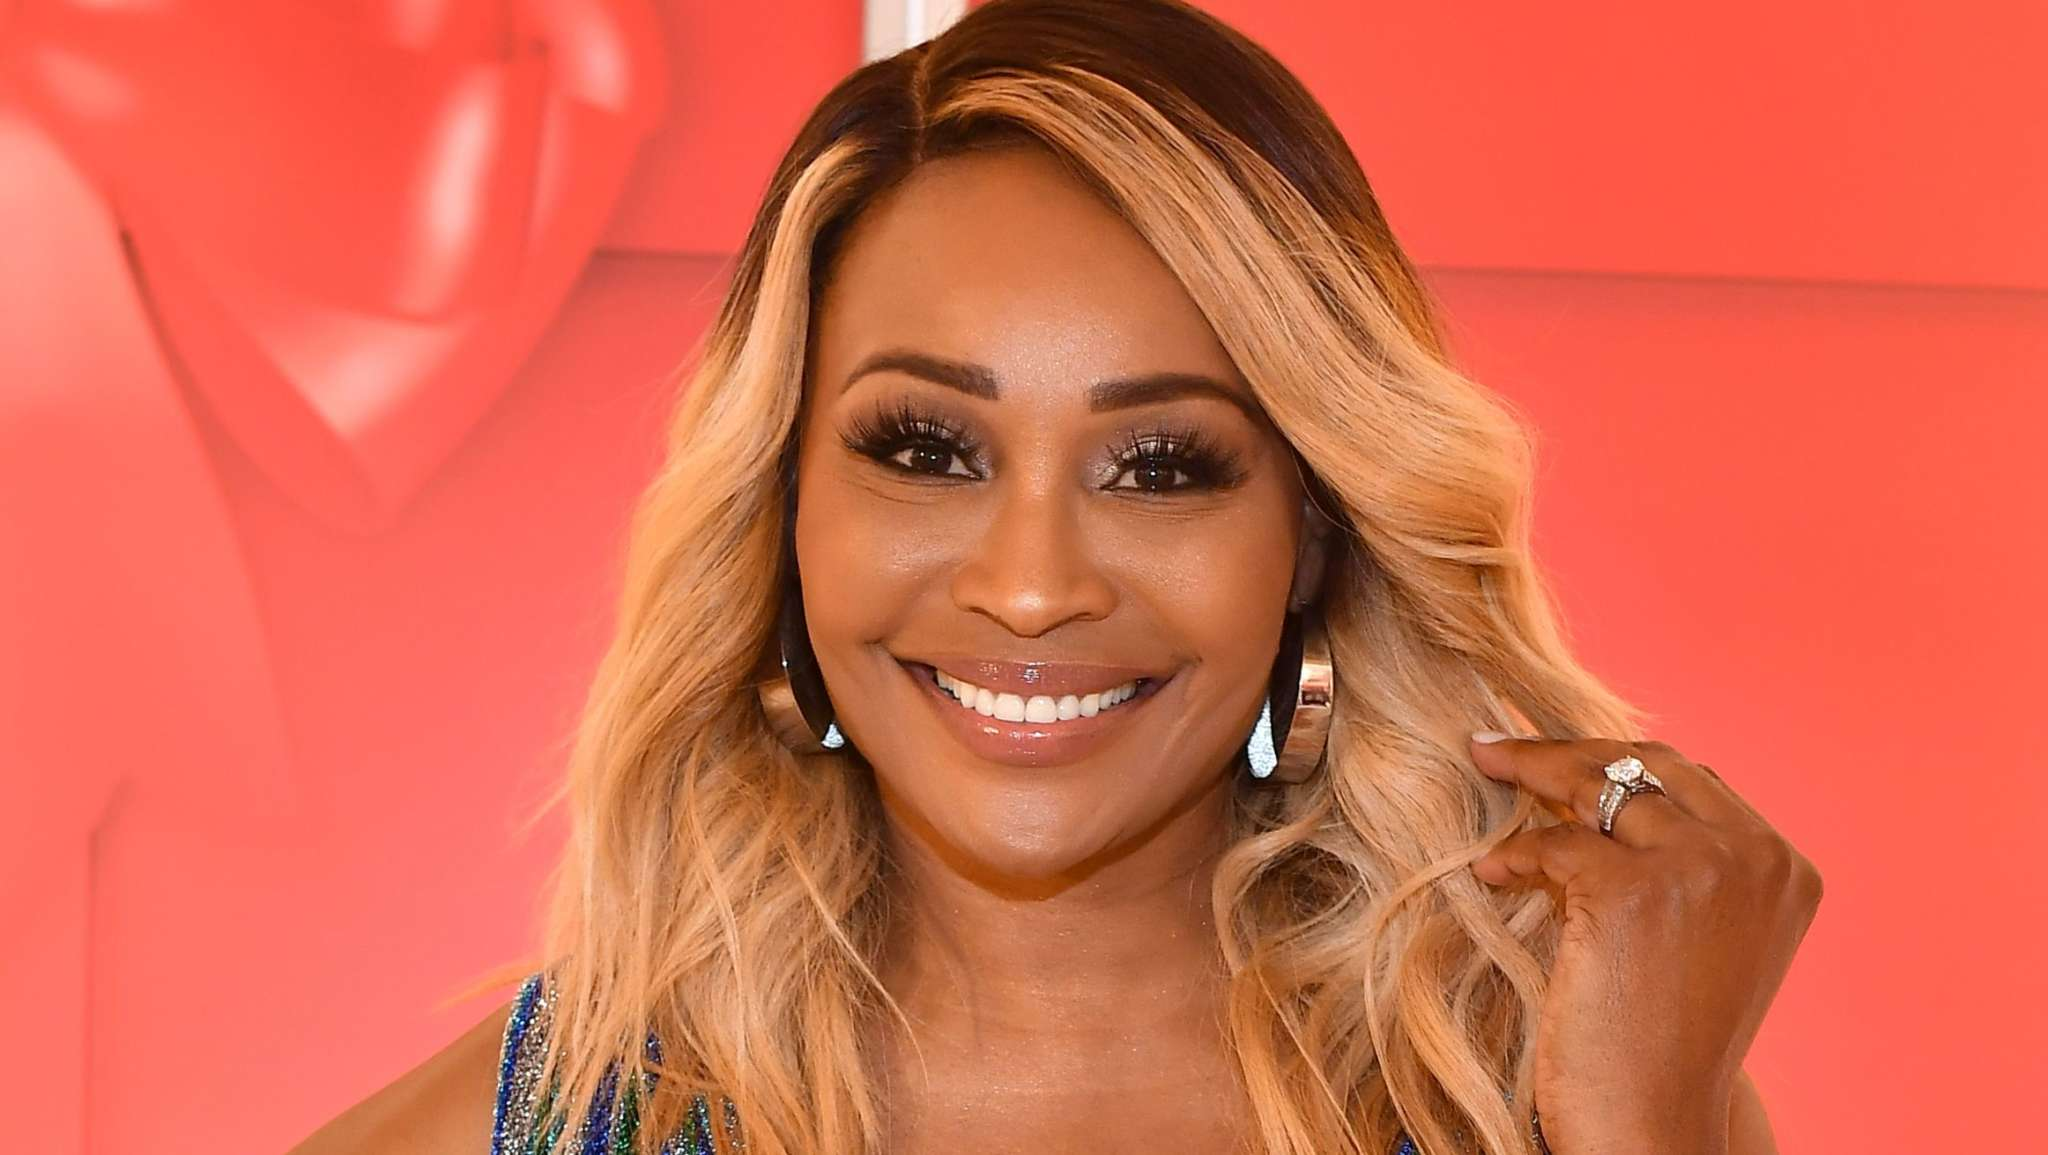 cynthia-bailey-has-a-message-for-fans-about-focus-and-distractions